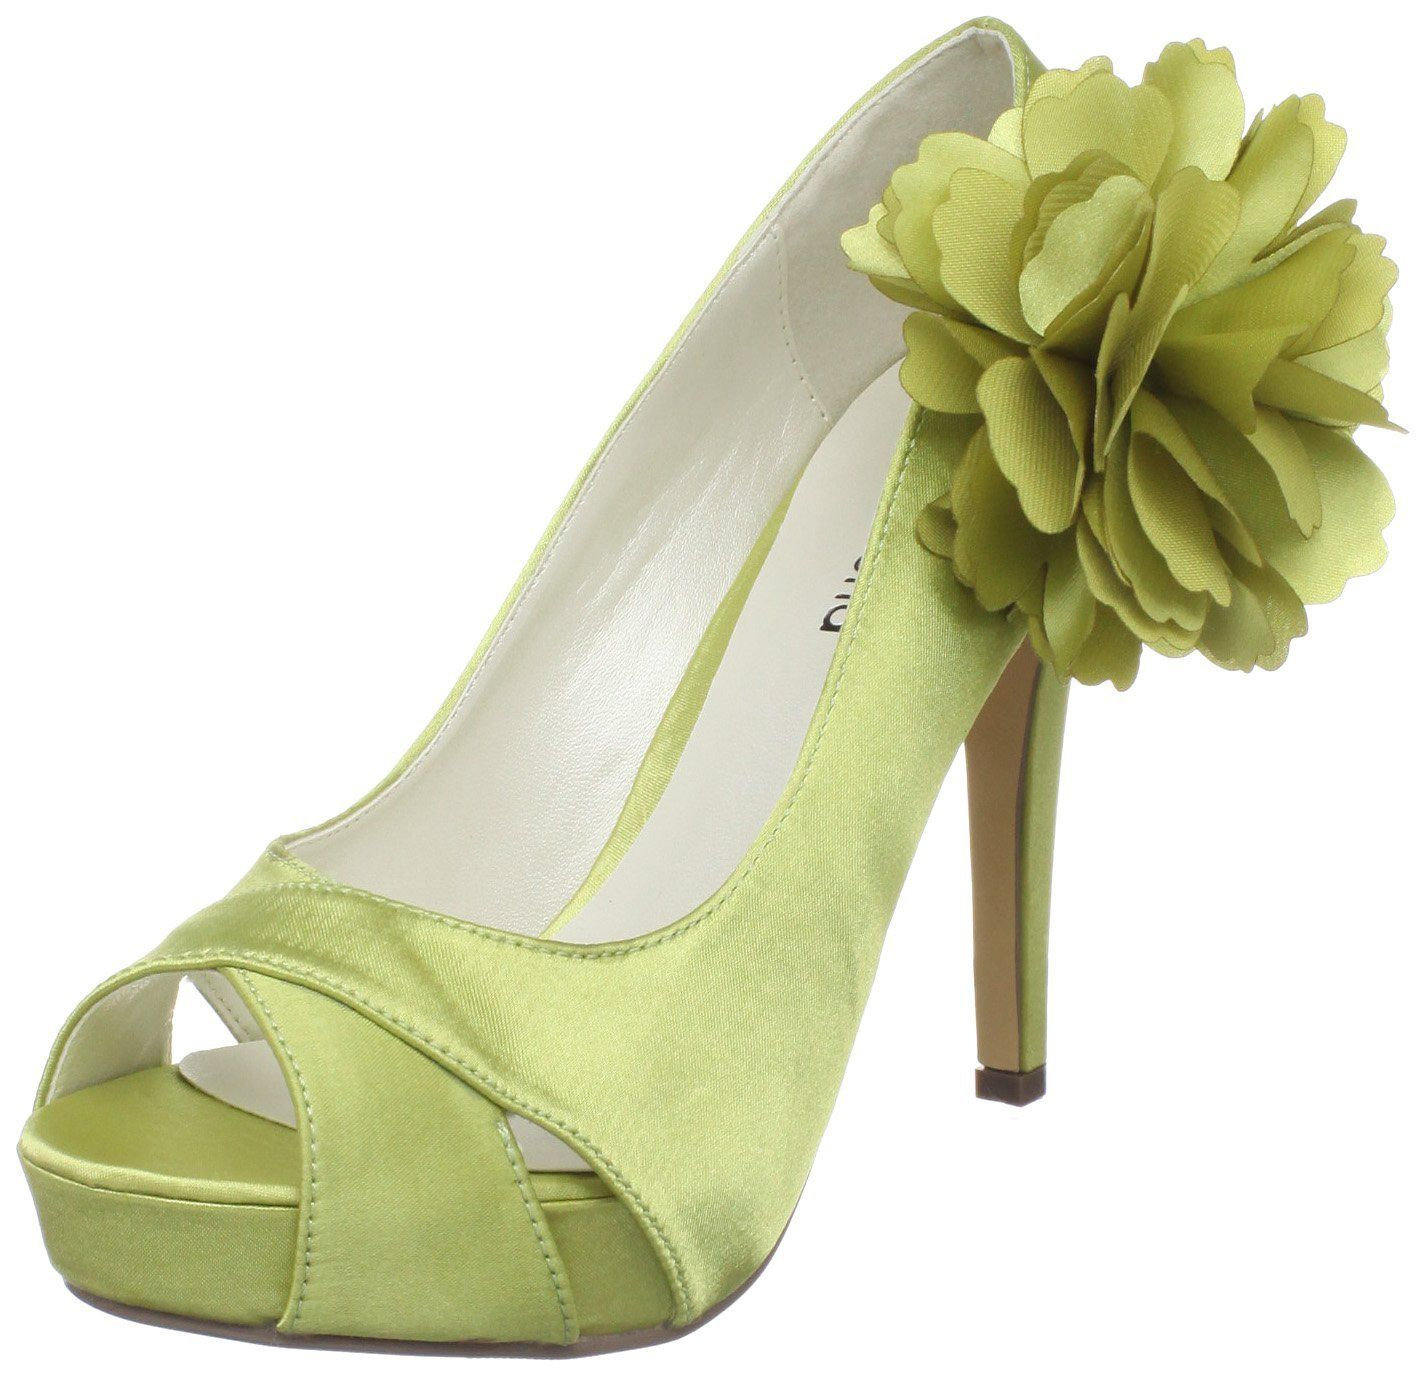 Okay I Know Ive Touted Menbur Shoes And Im Totally Biased Since My Wedding Were But Just Learned That Has OTHER